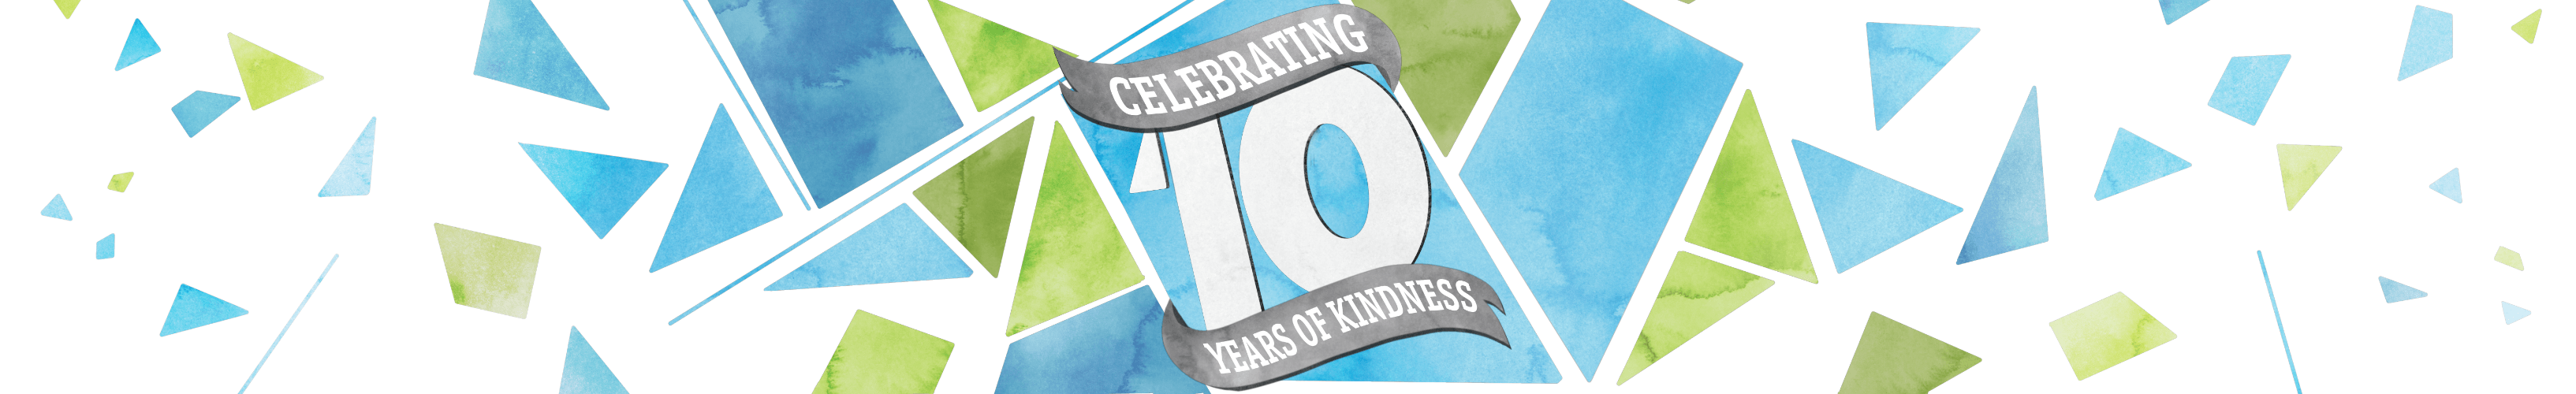 Celebrating 10 Years of Kindness with Random Acts